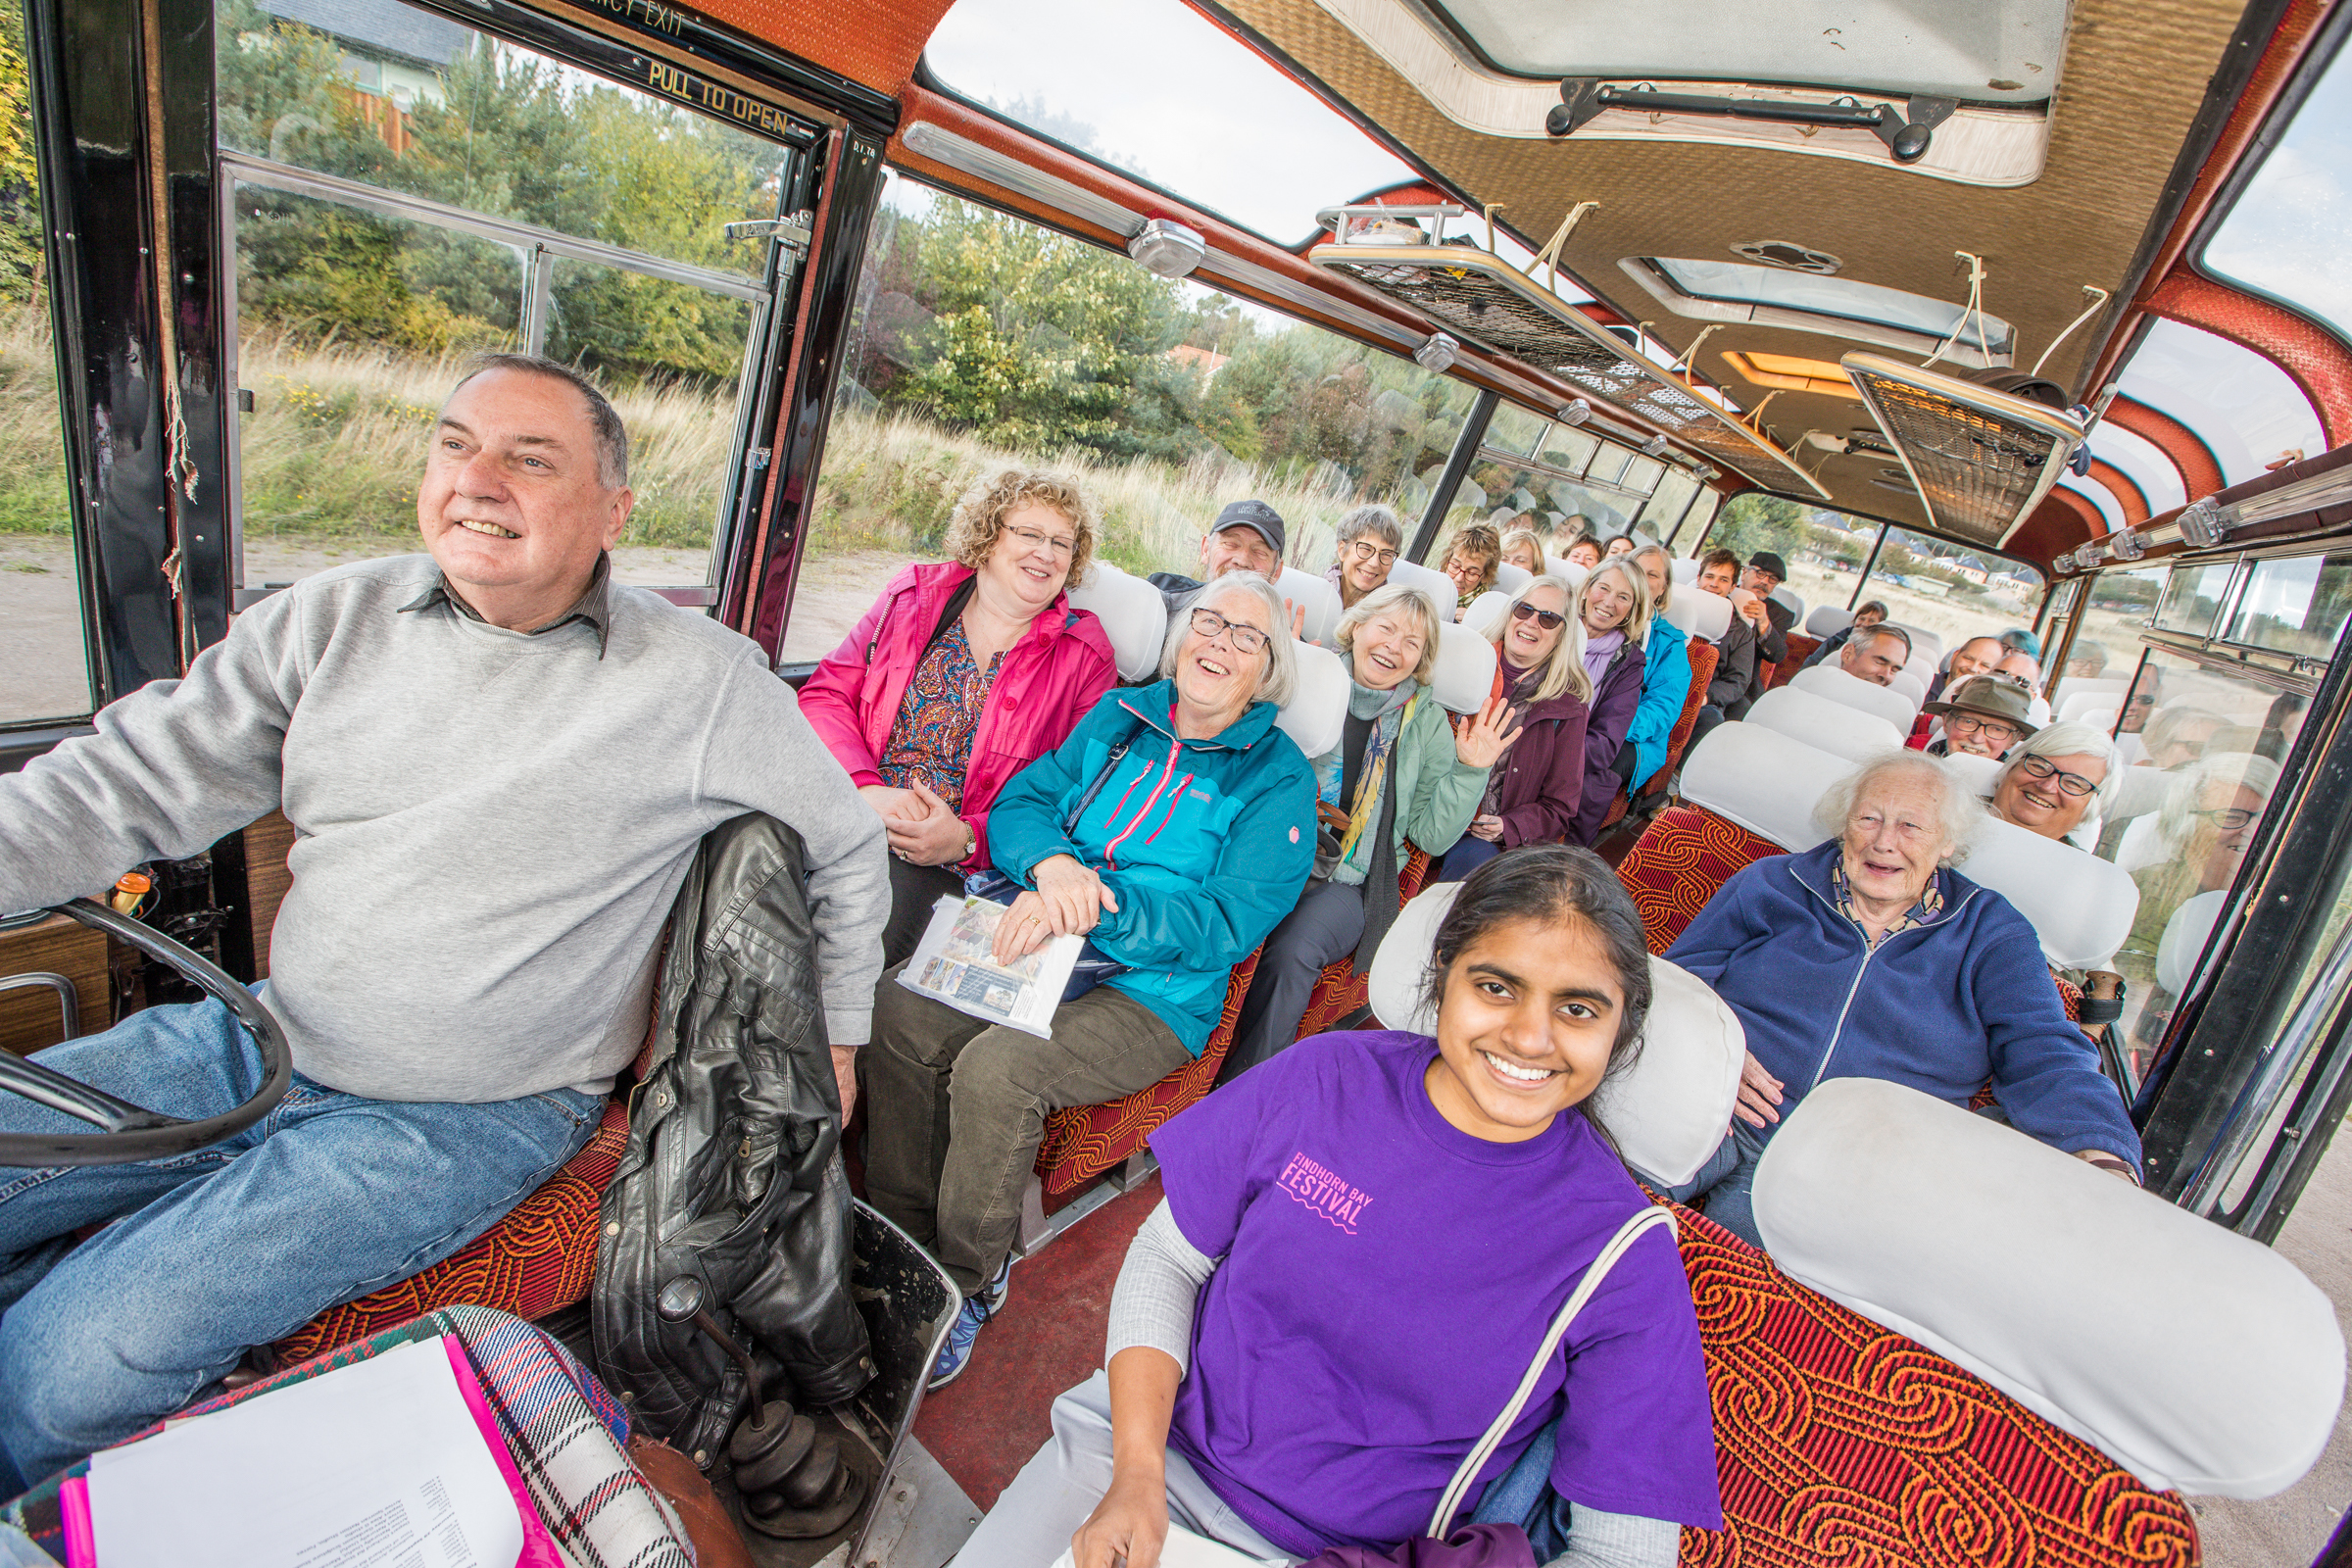 Tours of the area on a 1960s vintage bus were one of the sold-out events.